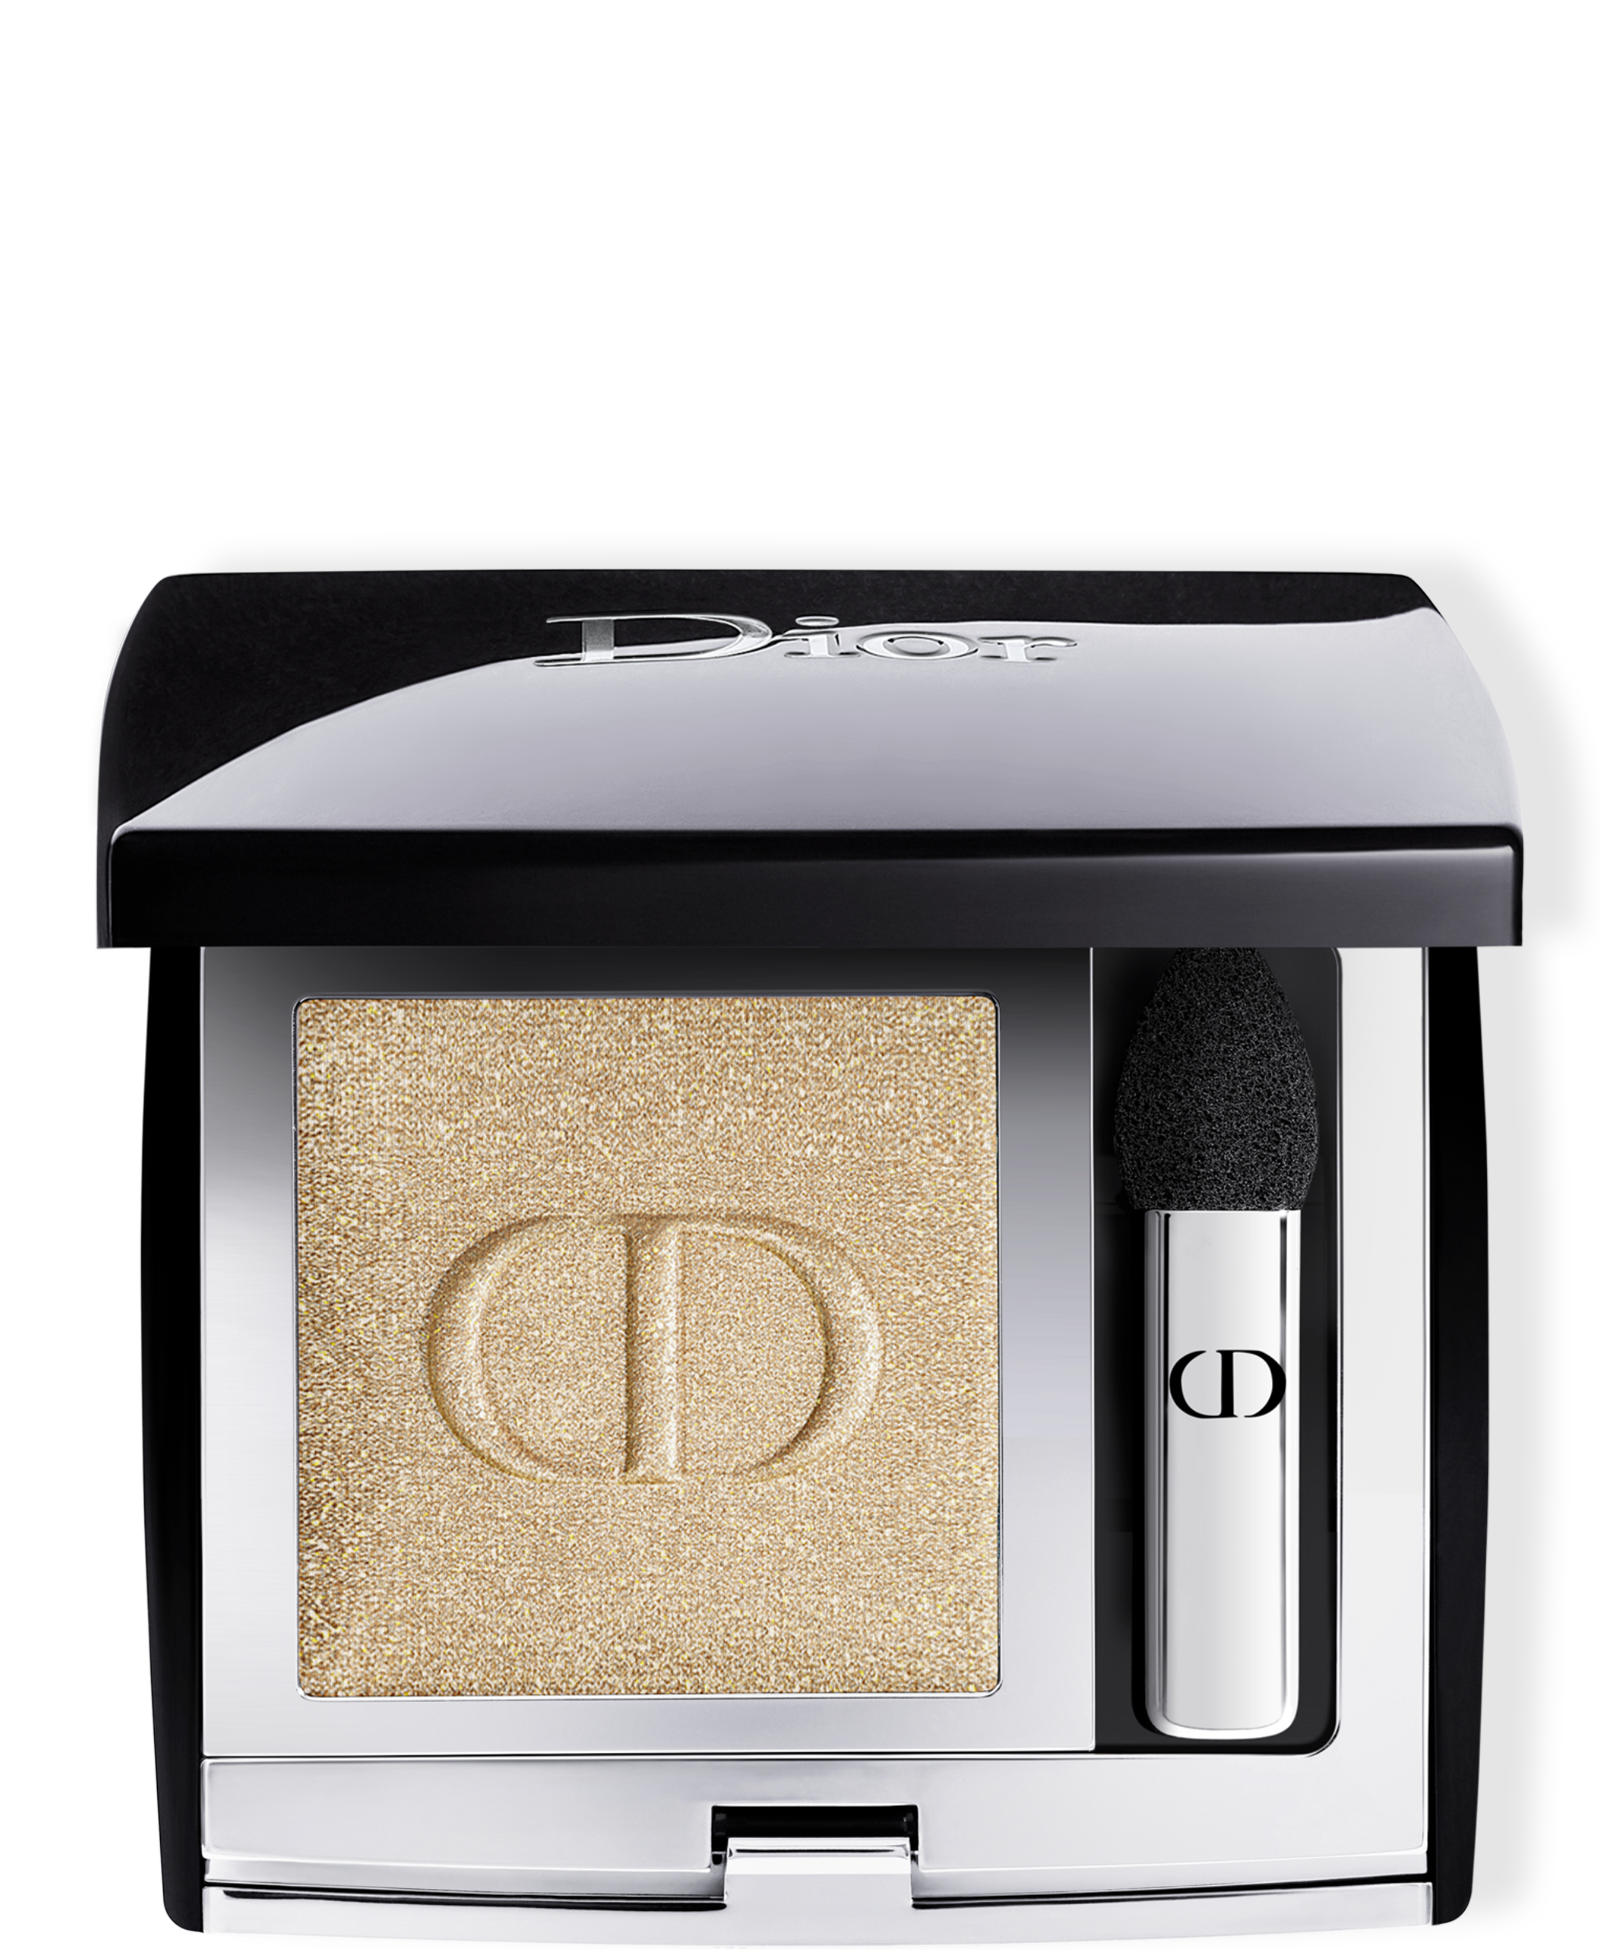 DIOR Mono Couleur Couture Eyeshadow, 616 gold star